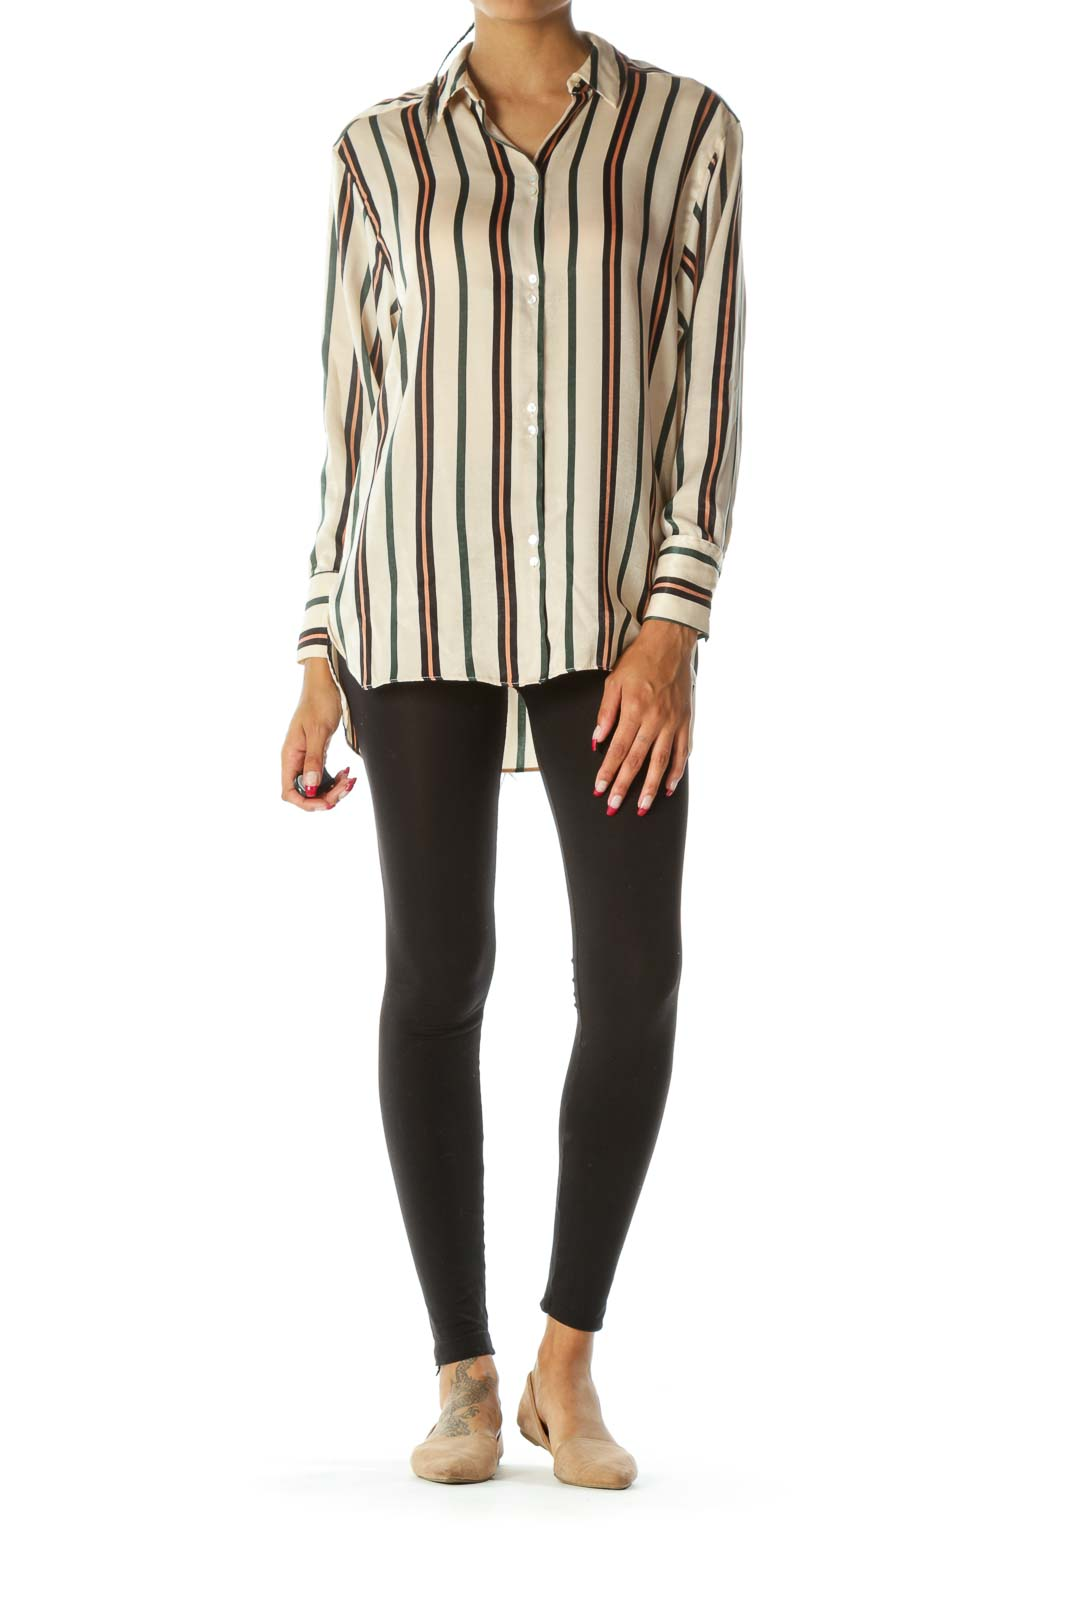 Beige Black Green Striped Shiny Long Sleeve Soft Shirt